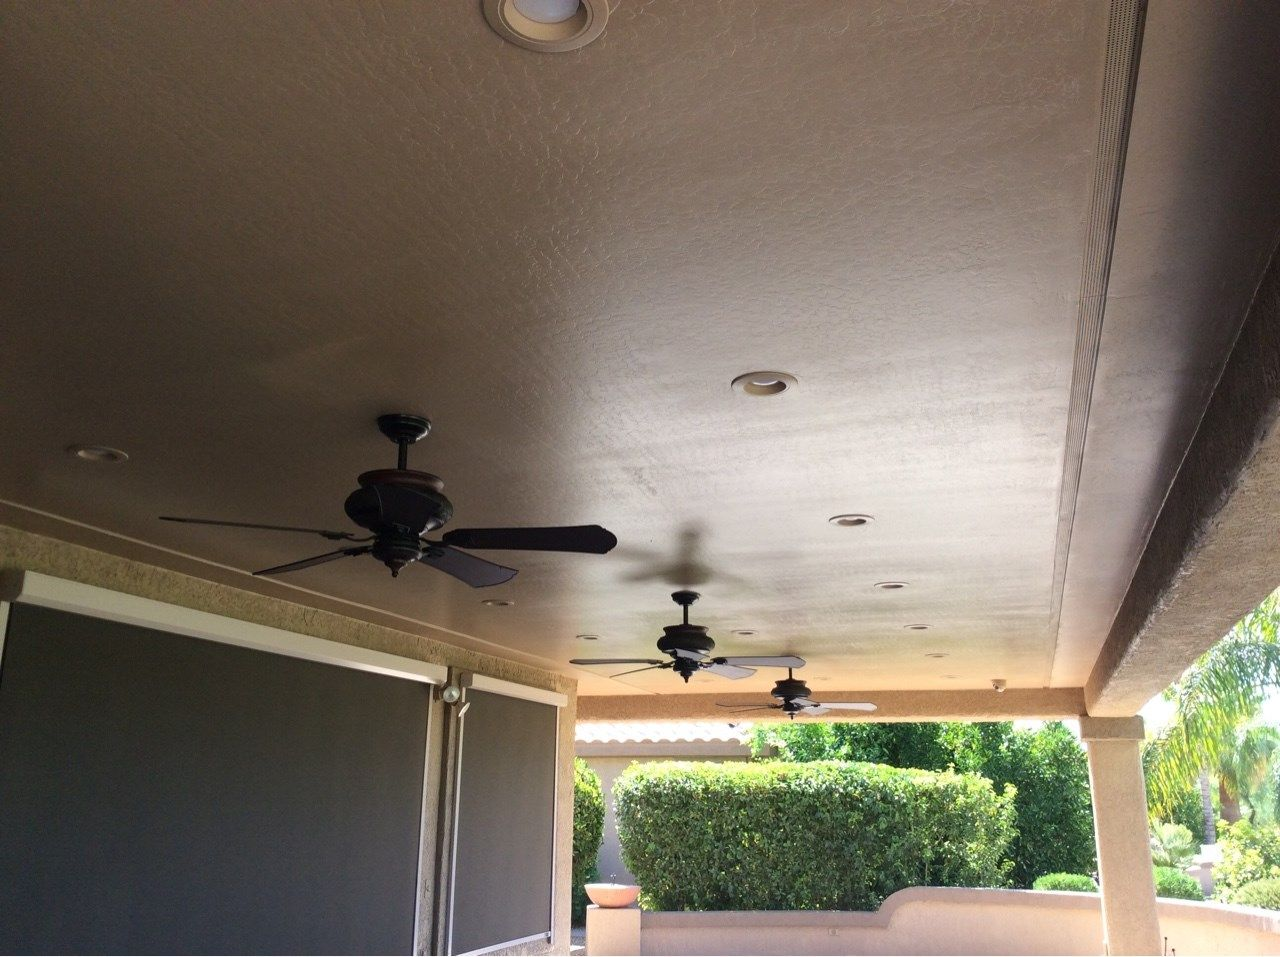 Recessed Lighting And Ceiling Fans On An Expansive Patio Extension That And More By Twd Www Twdaz Com Twd Ceiling Fan Types Of Houses Home Decor